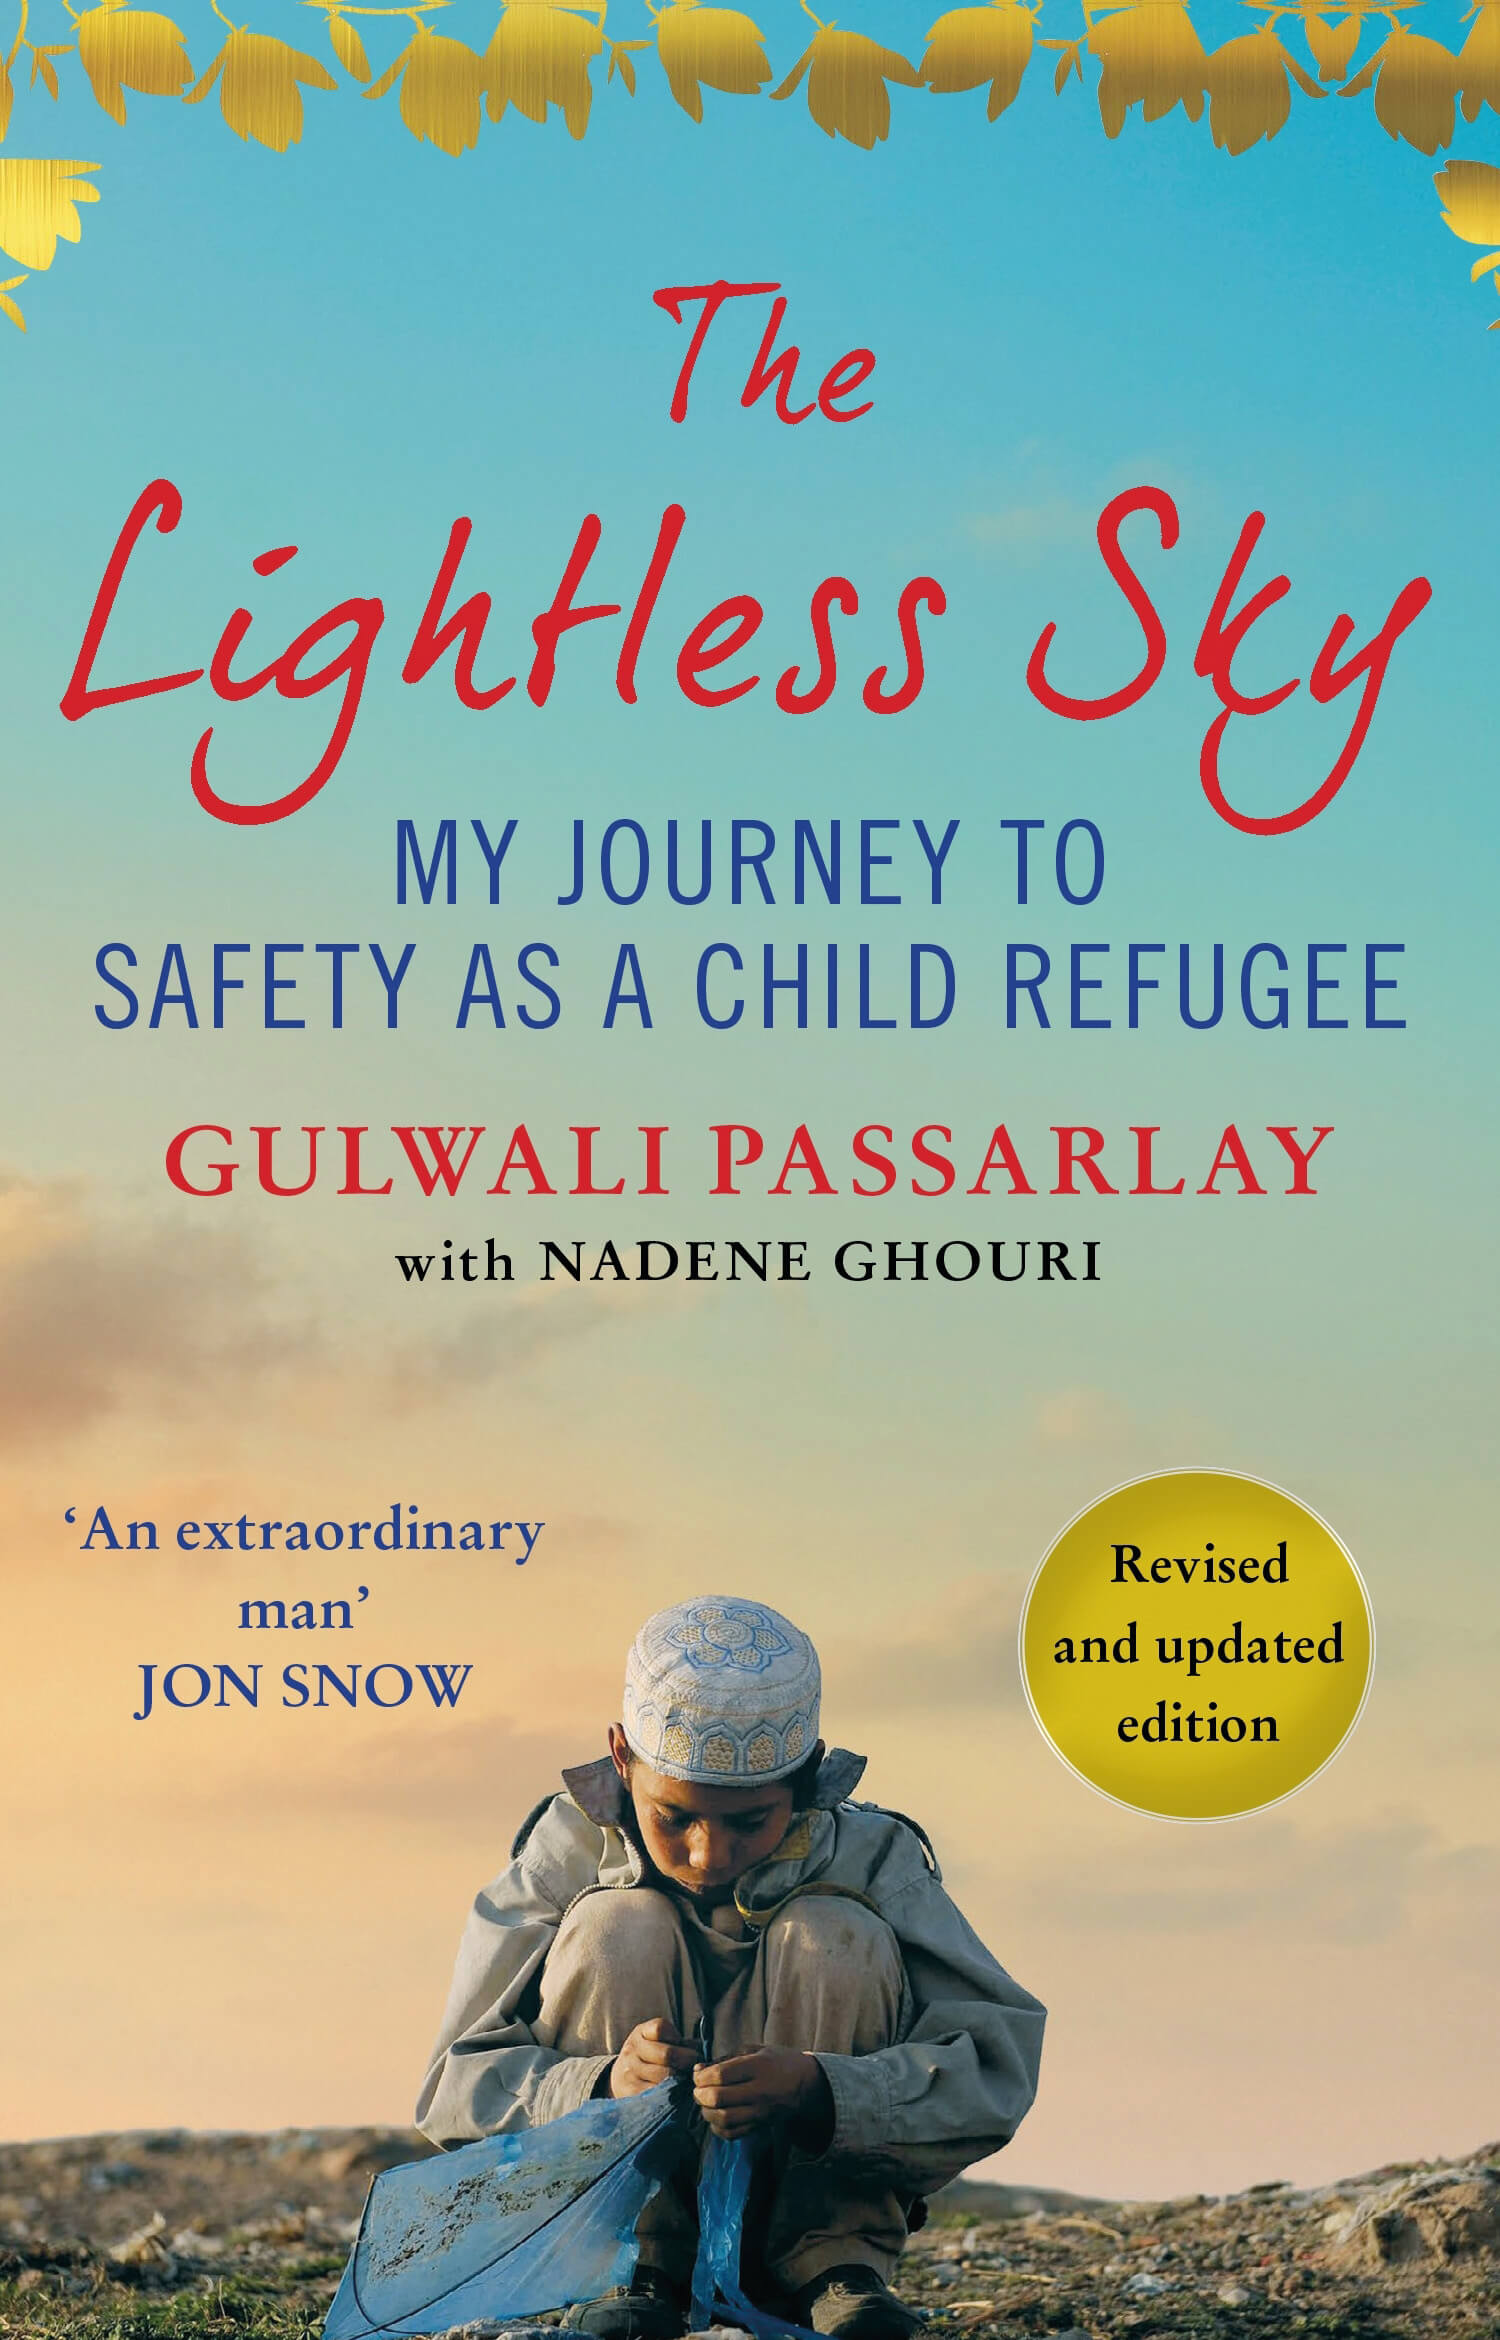 A new edition of The Lightless Sky has been published by Atlantic Books, ISBN 9780062443892